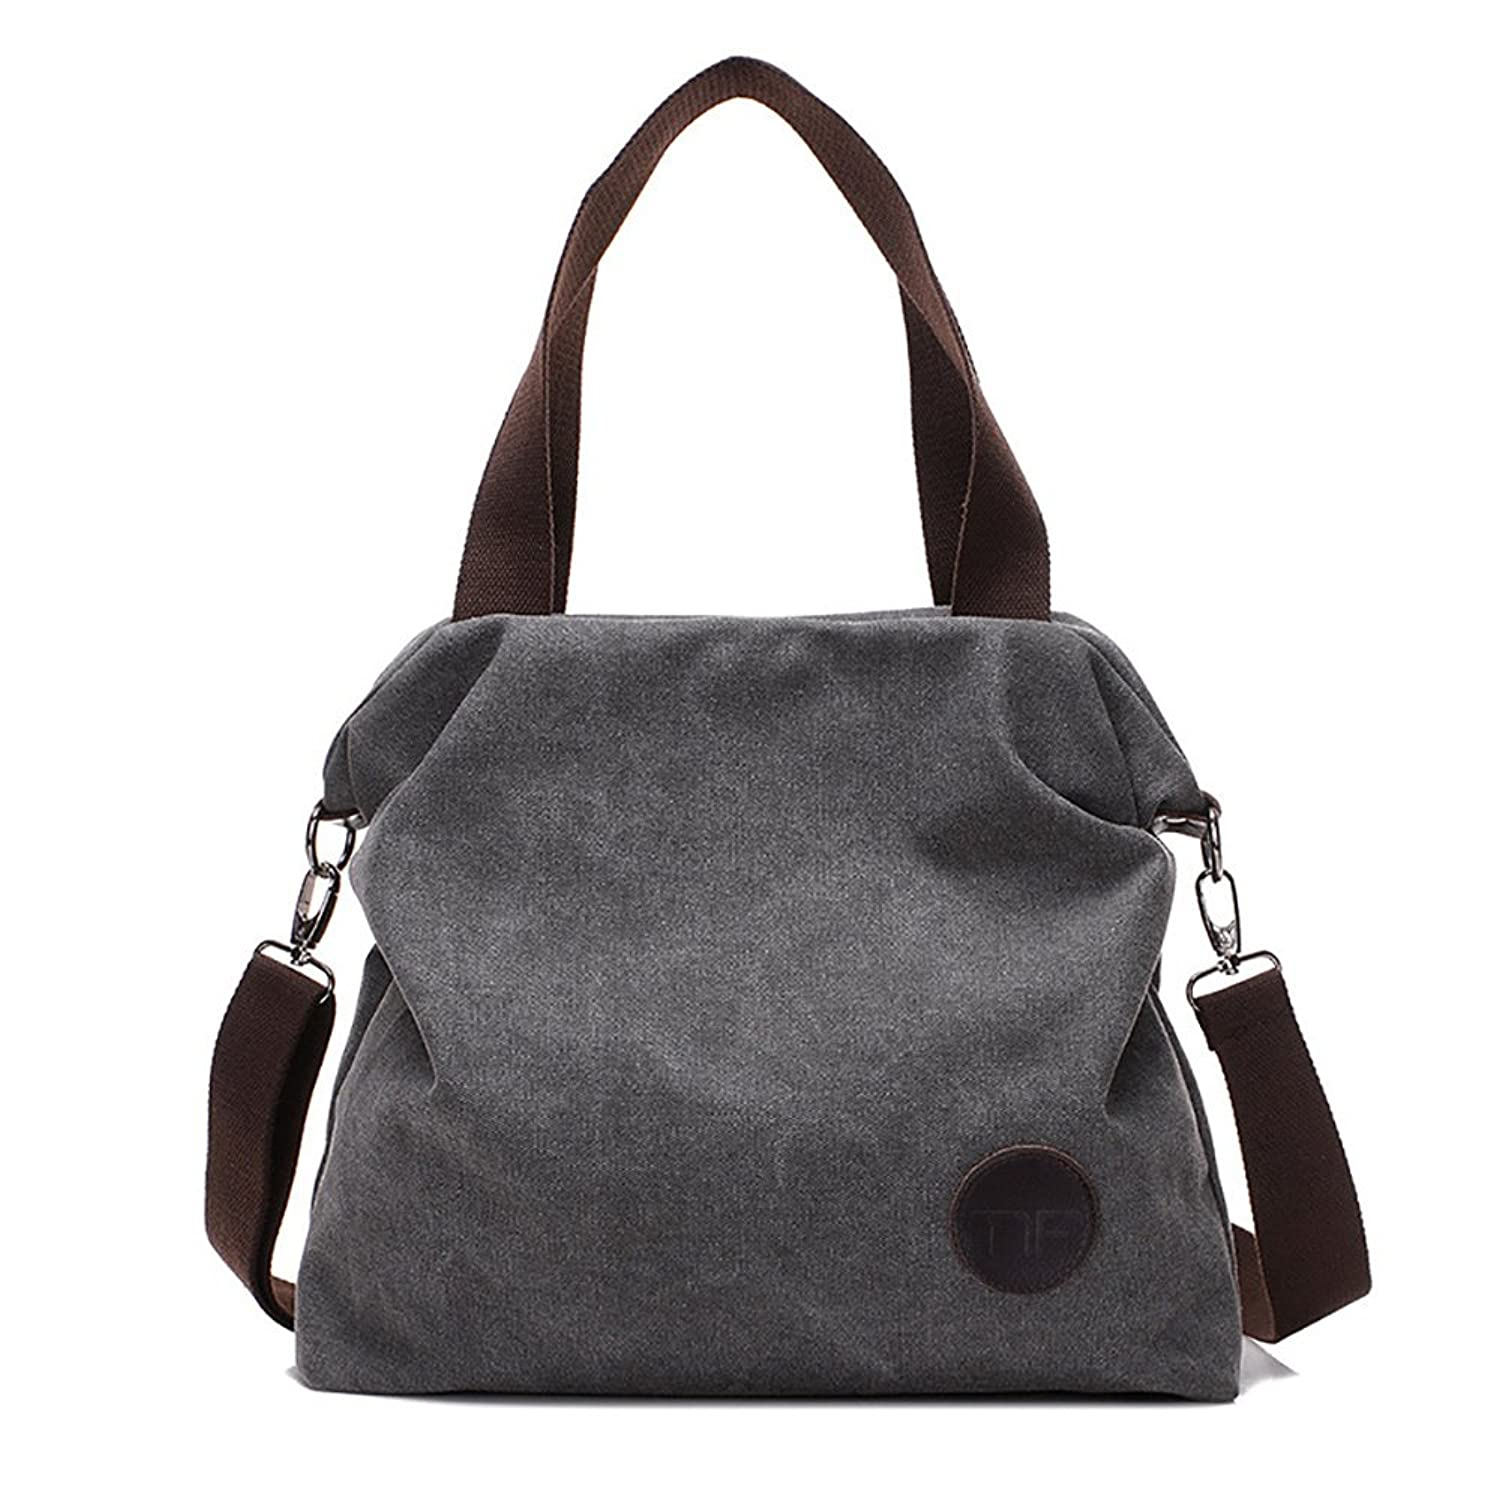 Mfeo Women Casual Canvas Shoulder Bags Cross Body Bag Messenger Tote